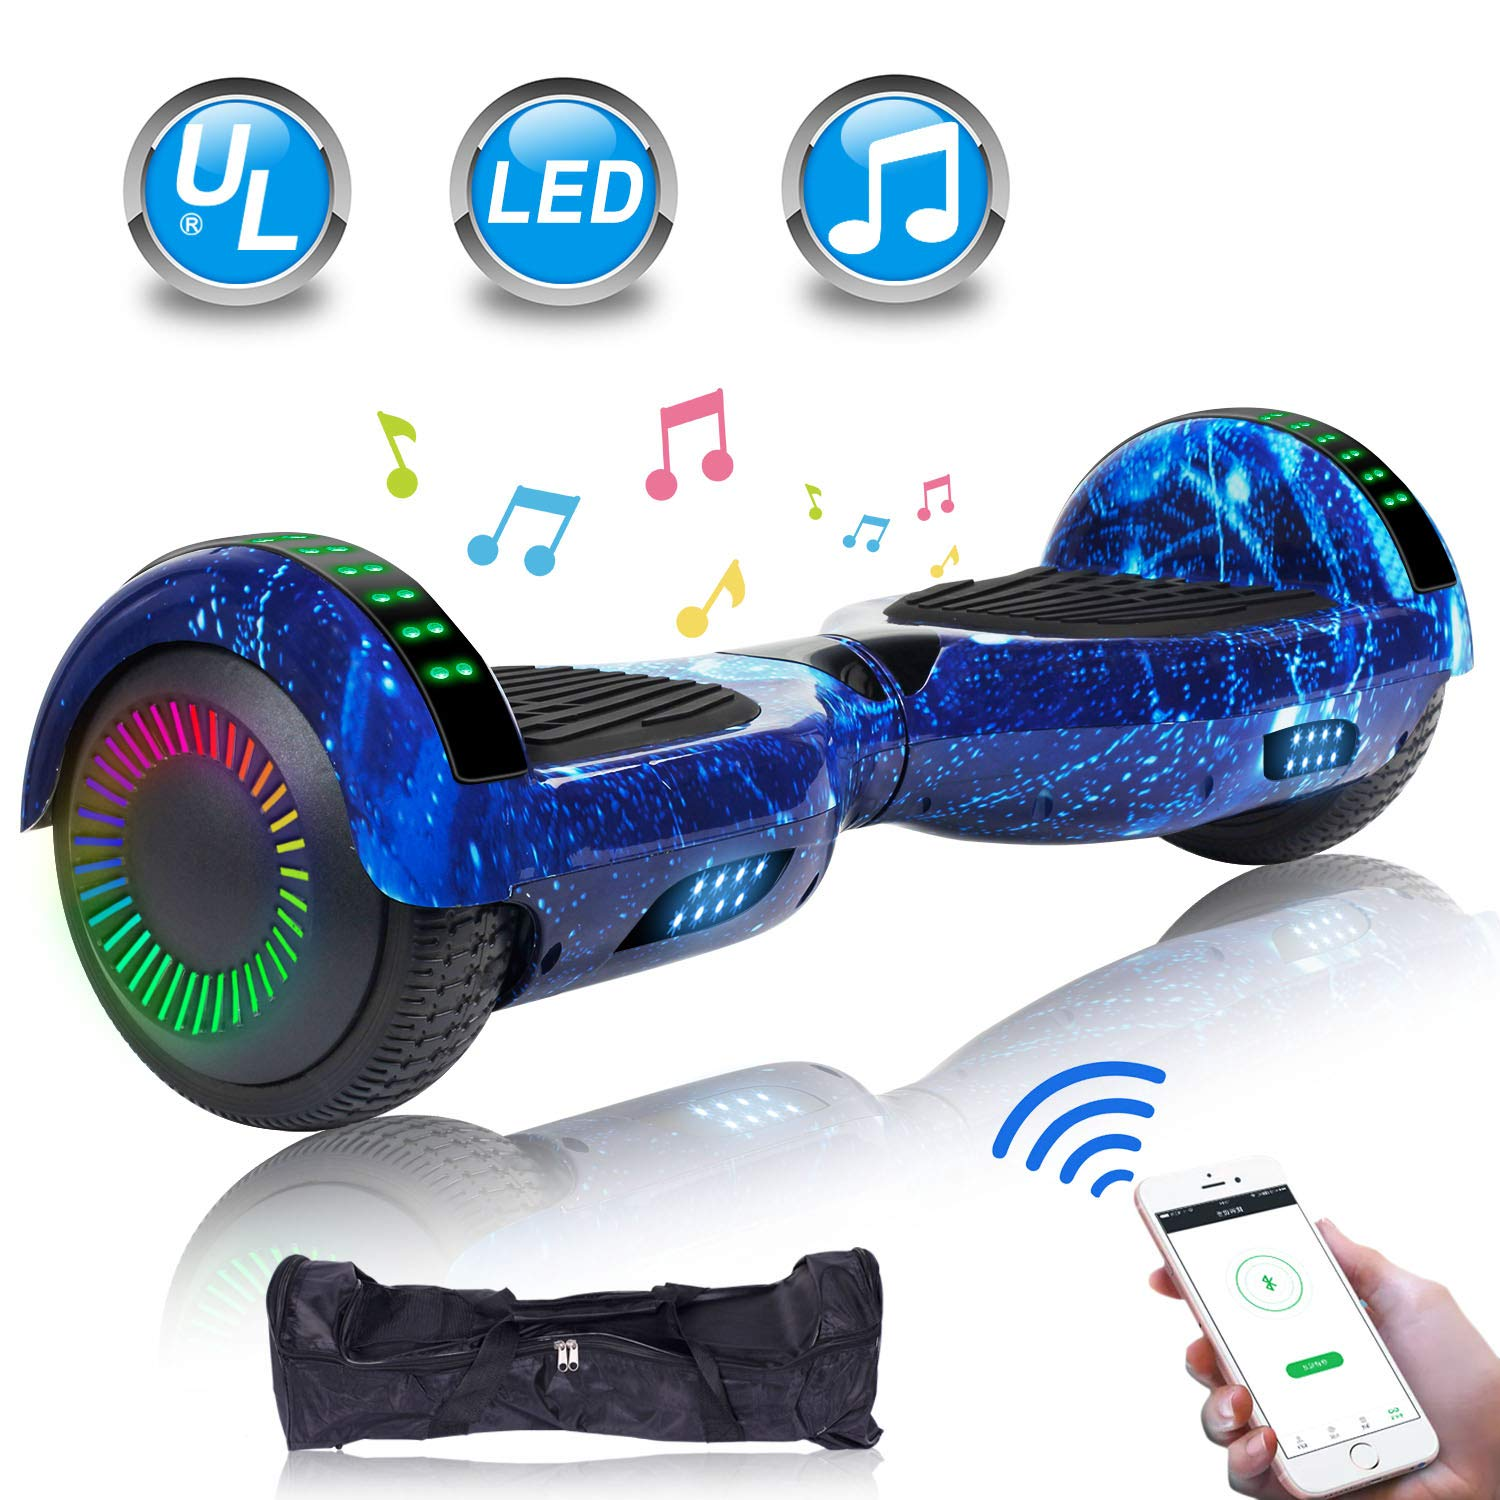 UNI-SUN 6.5'' Hoverboard for Kids, Two Wheel Electric Scooter, Self Balancing Hoverboard with Bluetooth and LED Lights for Adults, UL 2272 Certified Hover Board(Ultimate Star Blue)